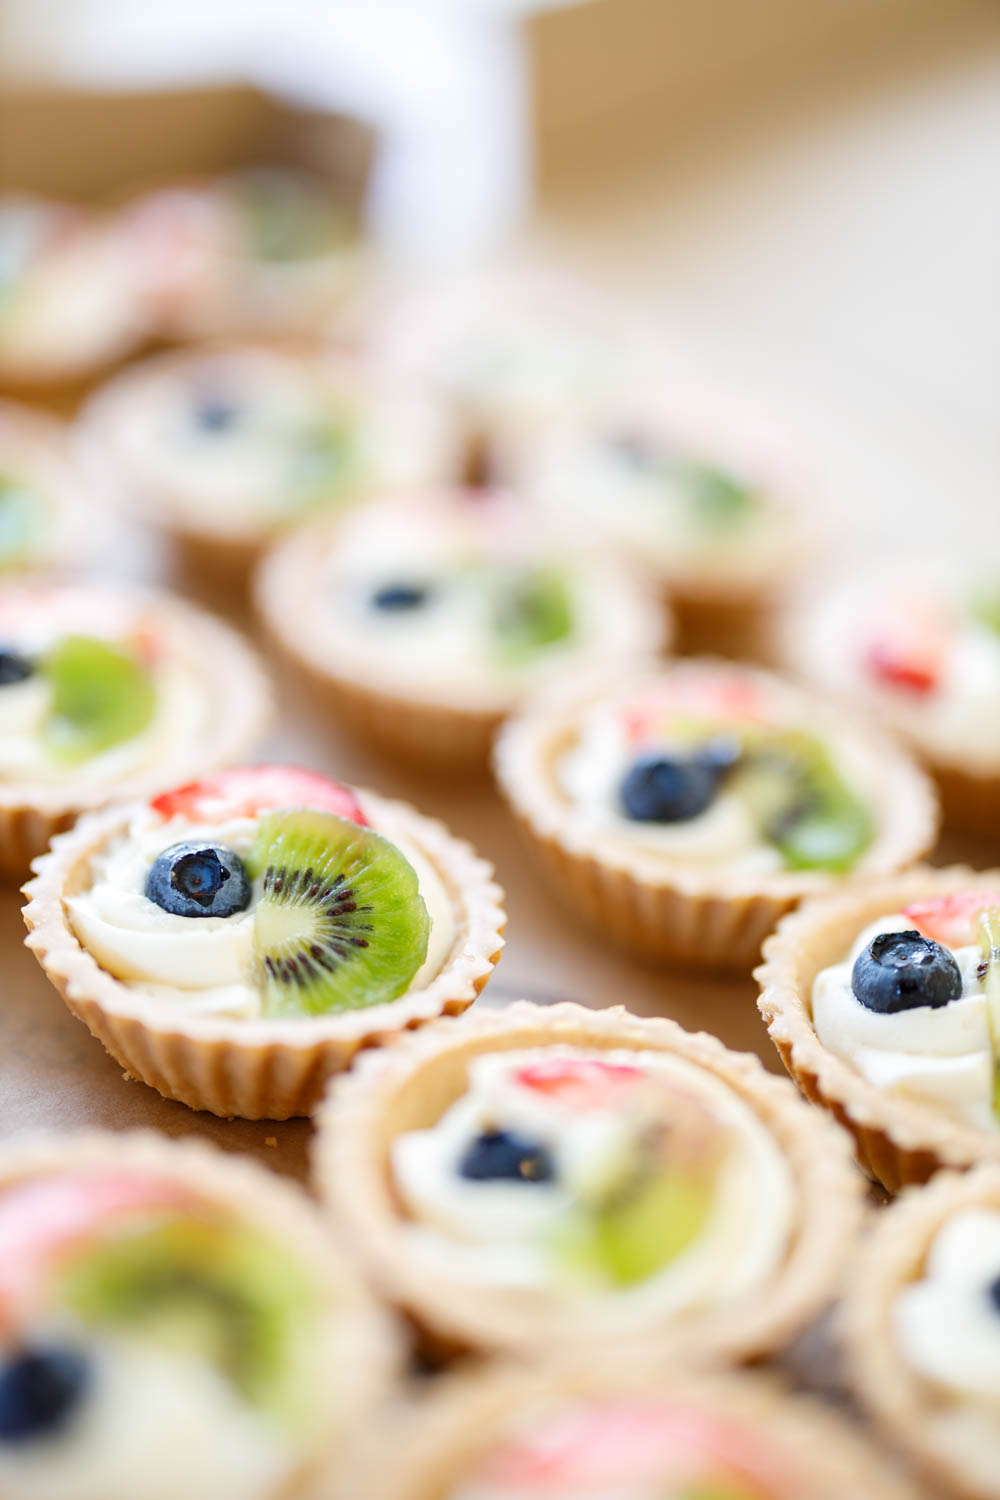 Fruit tarts for dessert